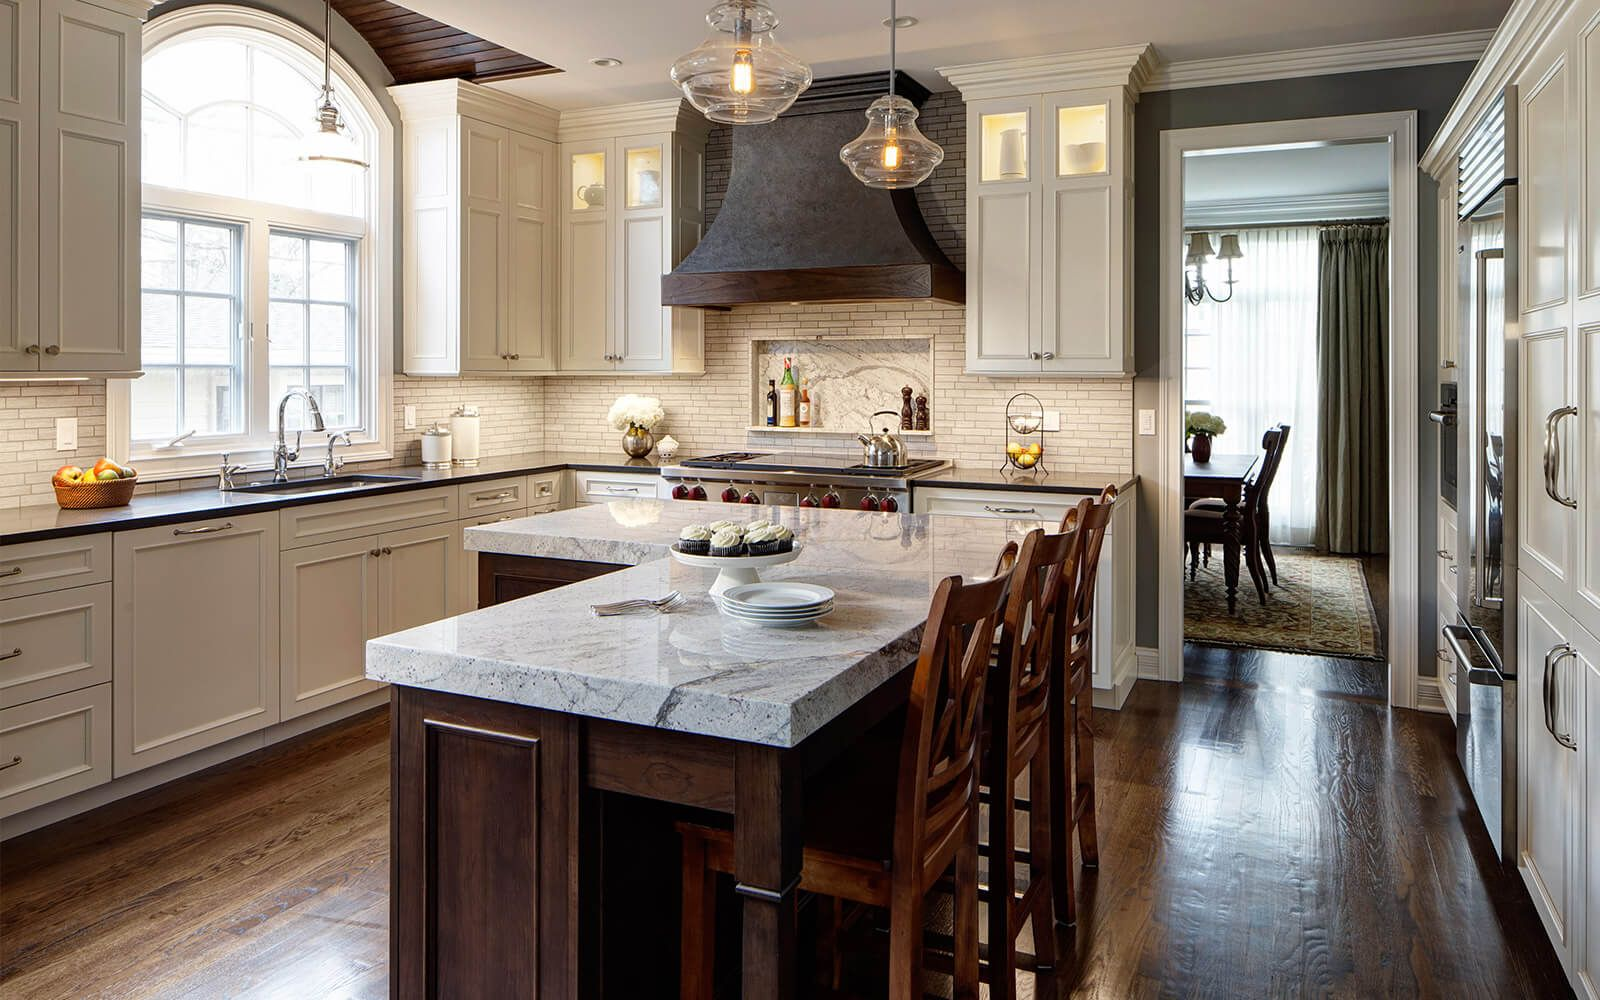 Traditional Kitchen Design - Drury Design | Transitional ...